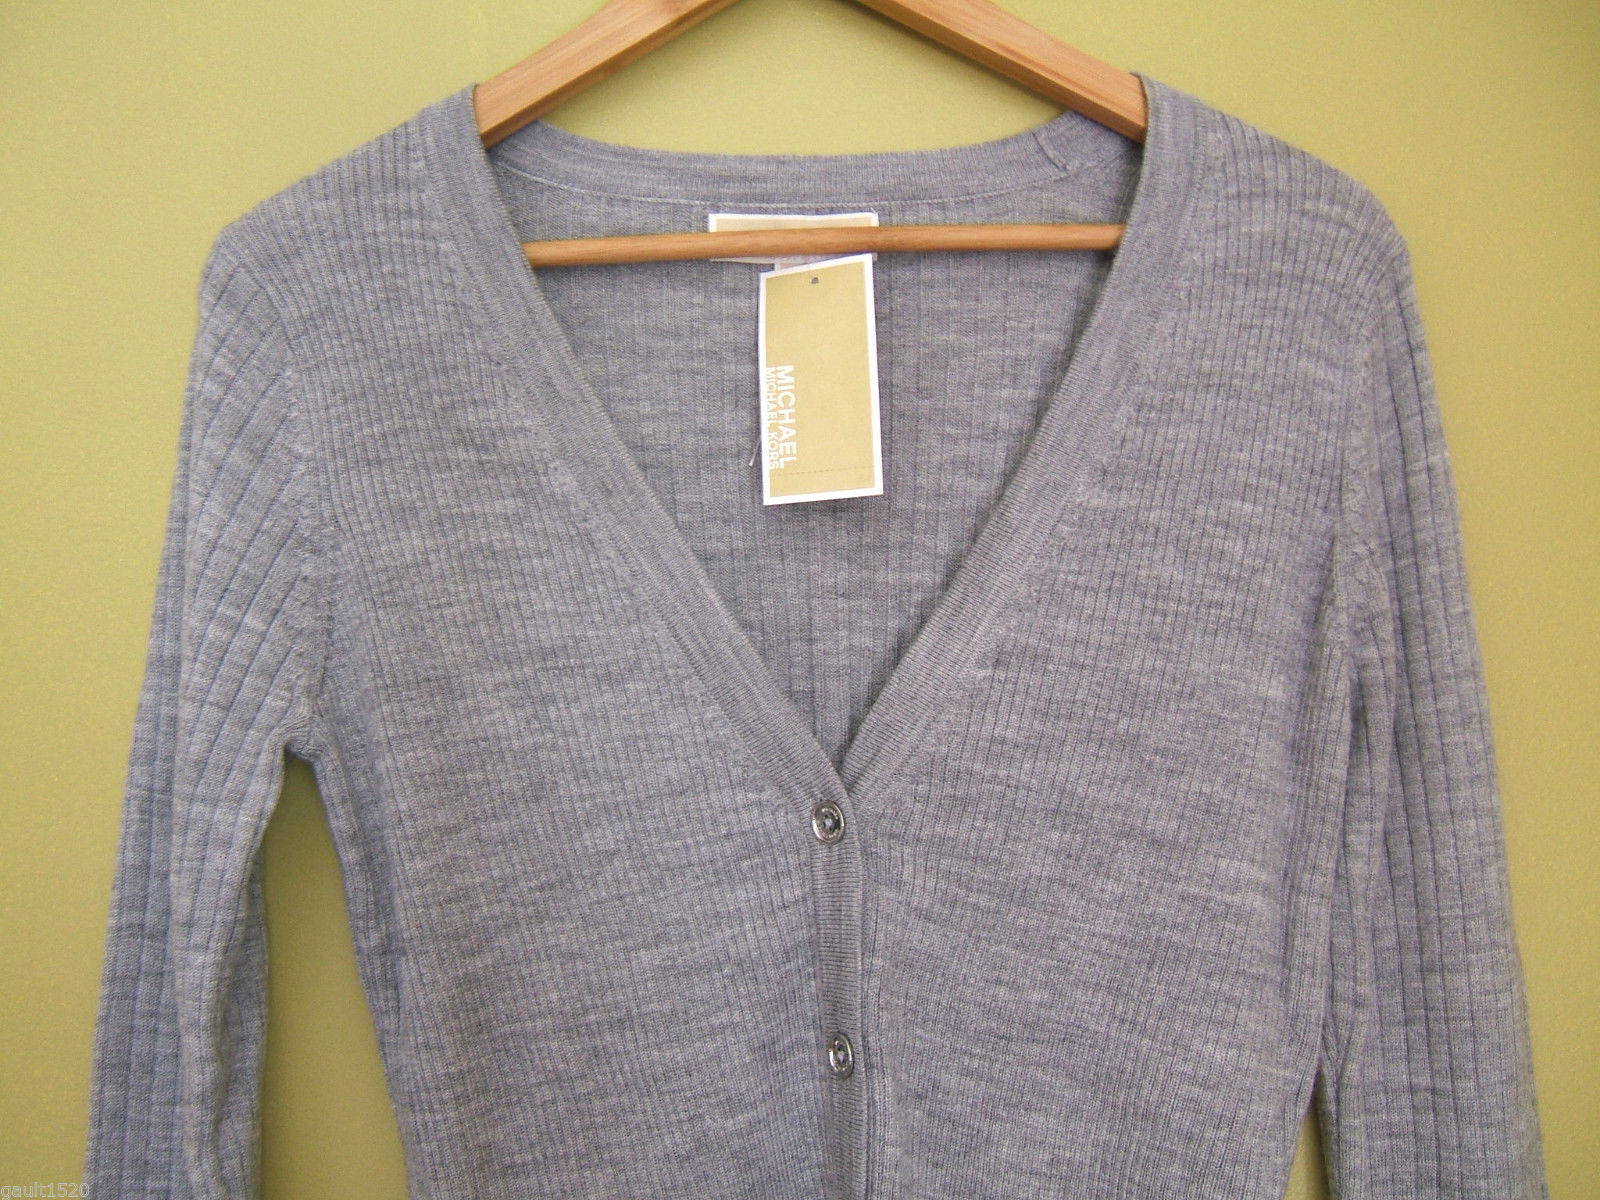 NWT Michael Kors Pearl Heather Gray Wool Cardigan Button Down Sweater S $170